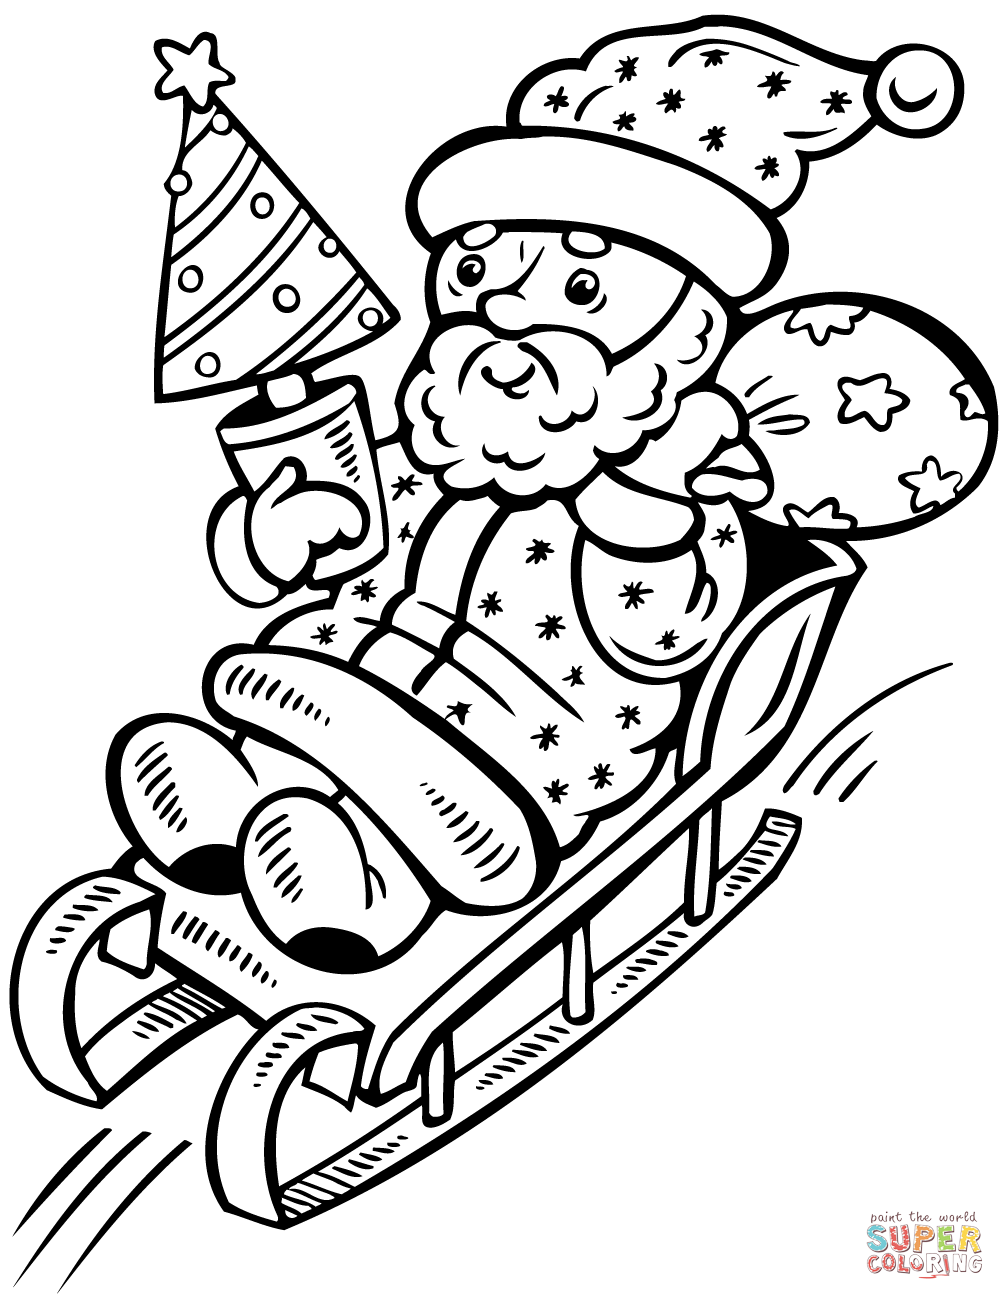 Santa Coloring Book Online With Claus On Sleigh Christmas Tree Page Free